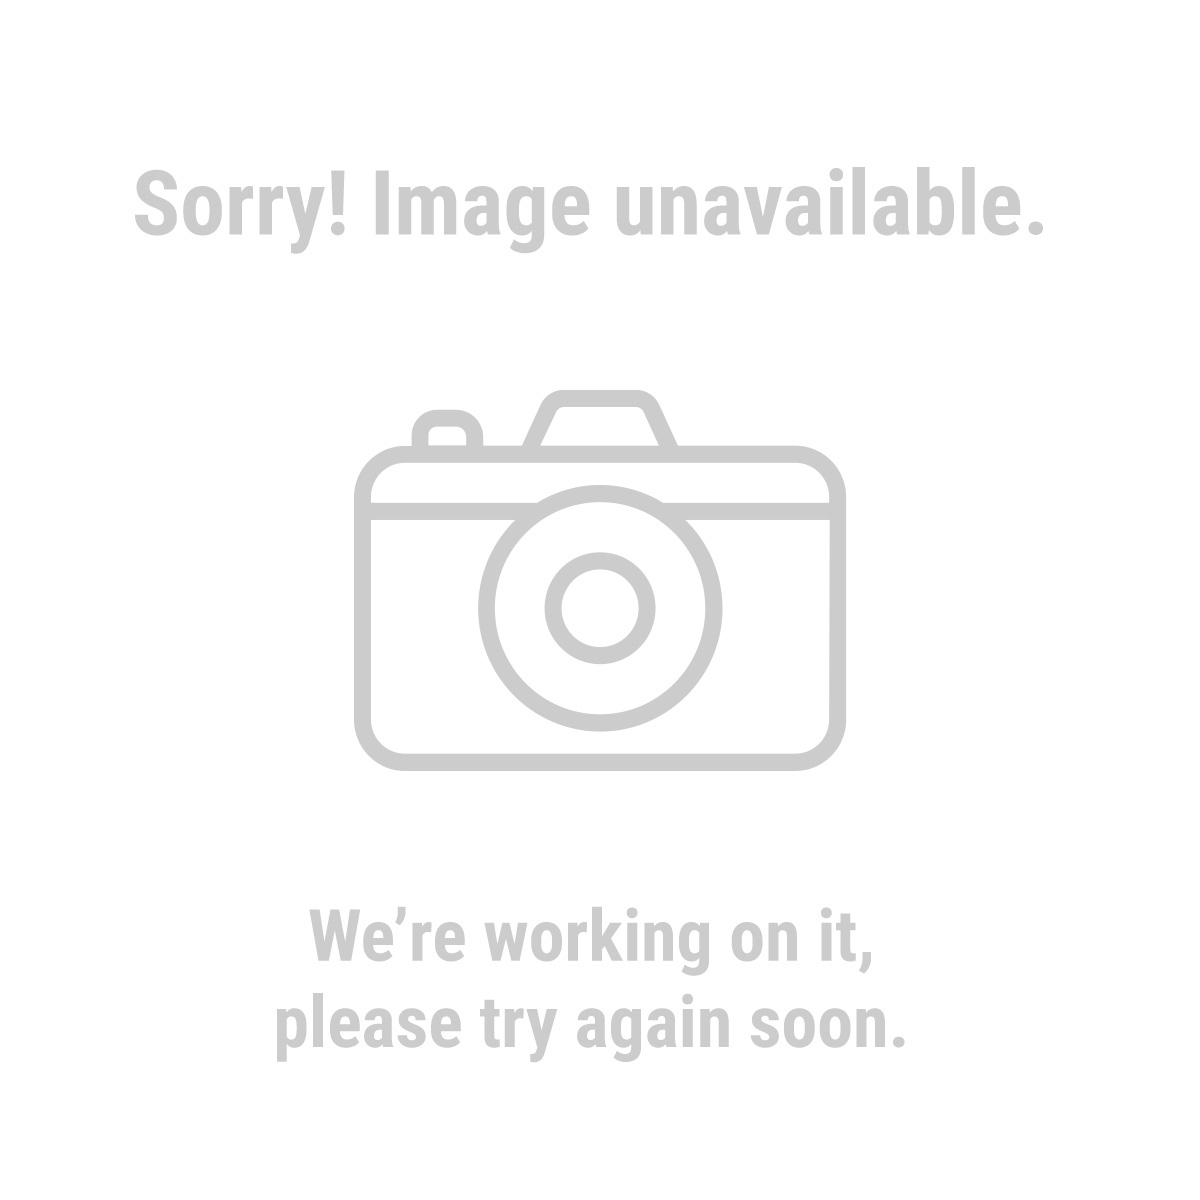 Central Pneumatic® 69092 10 gal. 2.5 HP 125 PSI Oil Lube Air Compressor